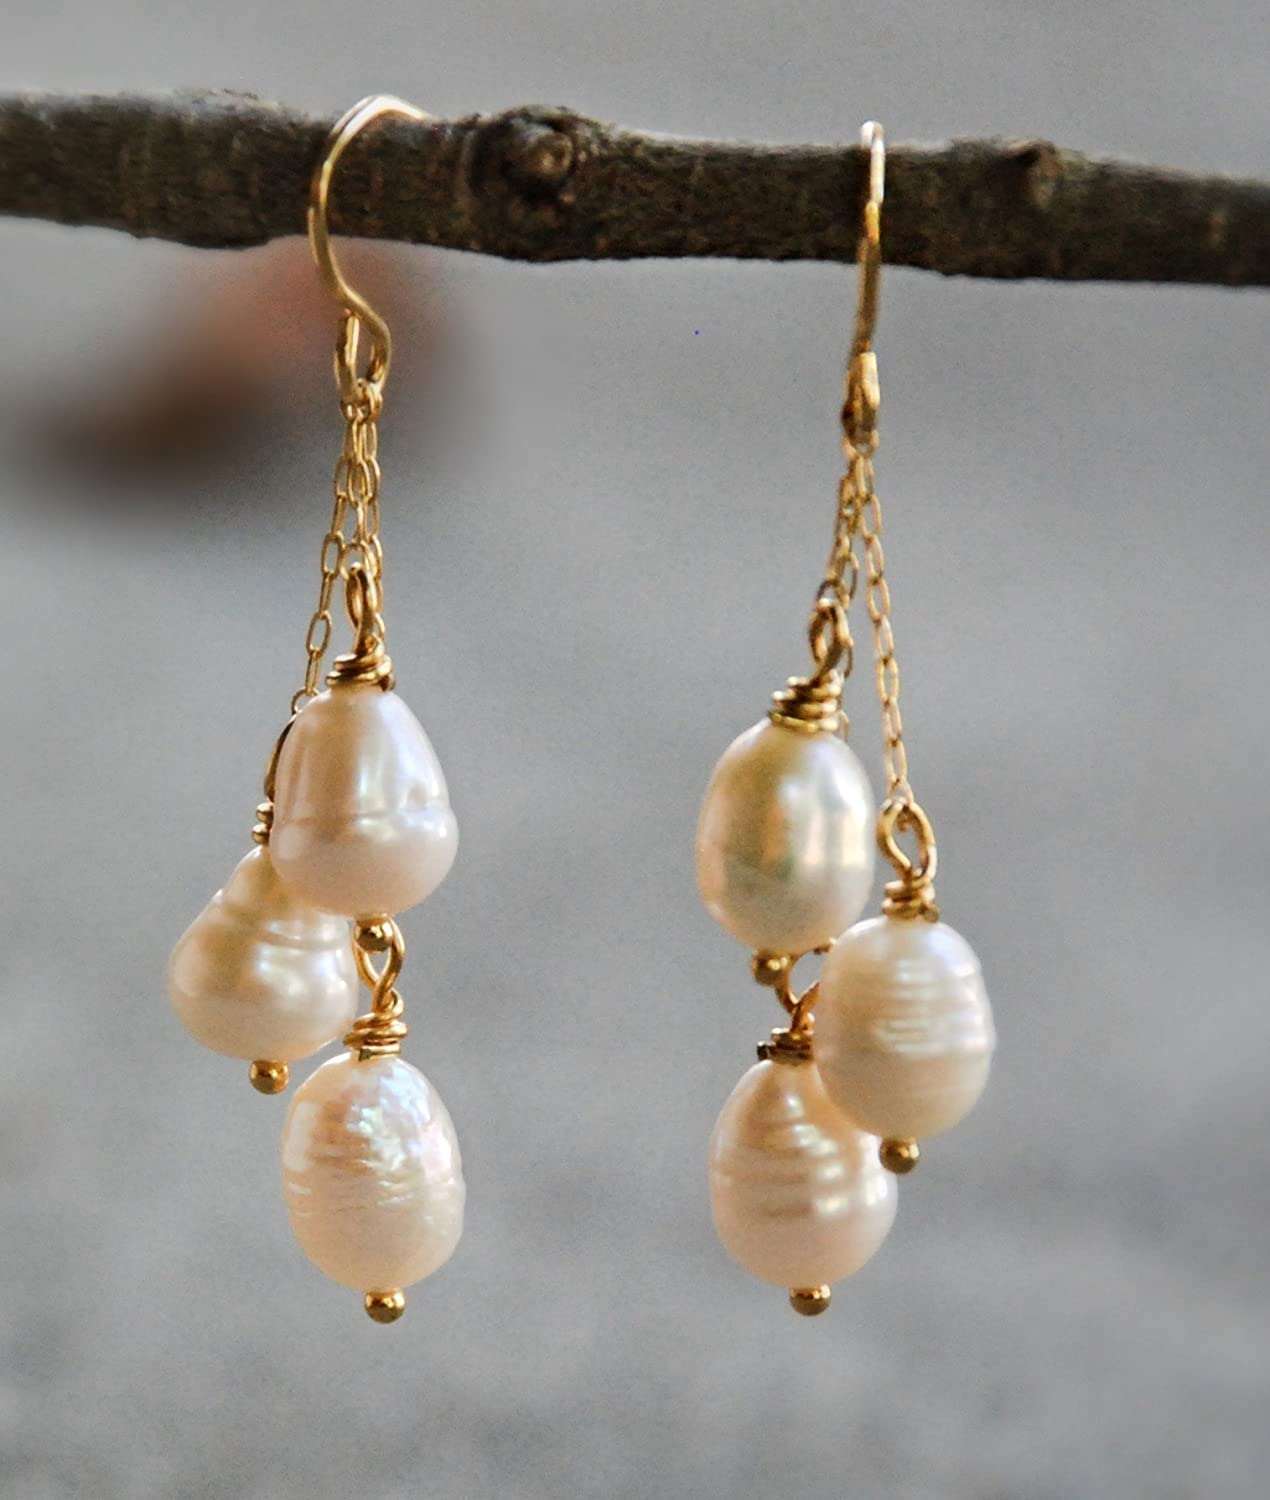 1 1/2 Inch Gold Tone Cultured Cream Freshwater Pearl Drop Earrings Wedding Bridal Bridesmaids Jewelry